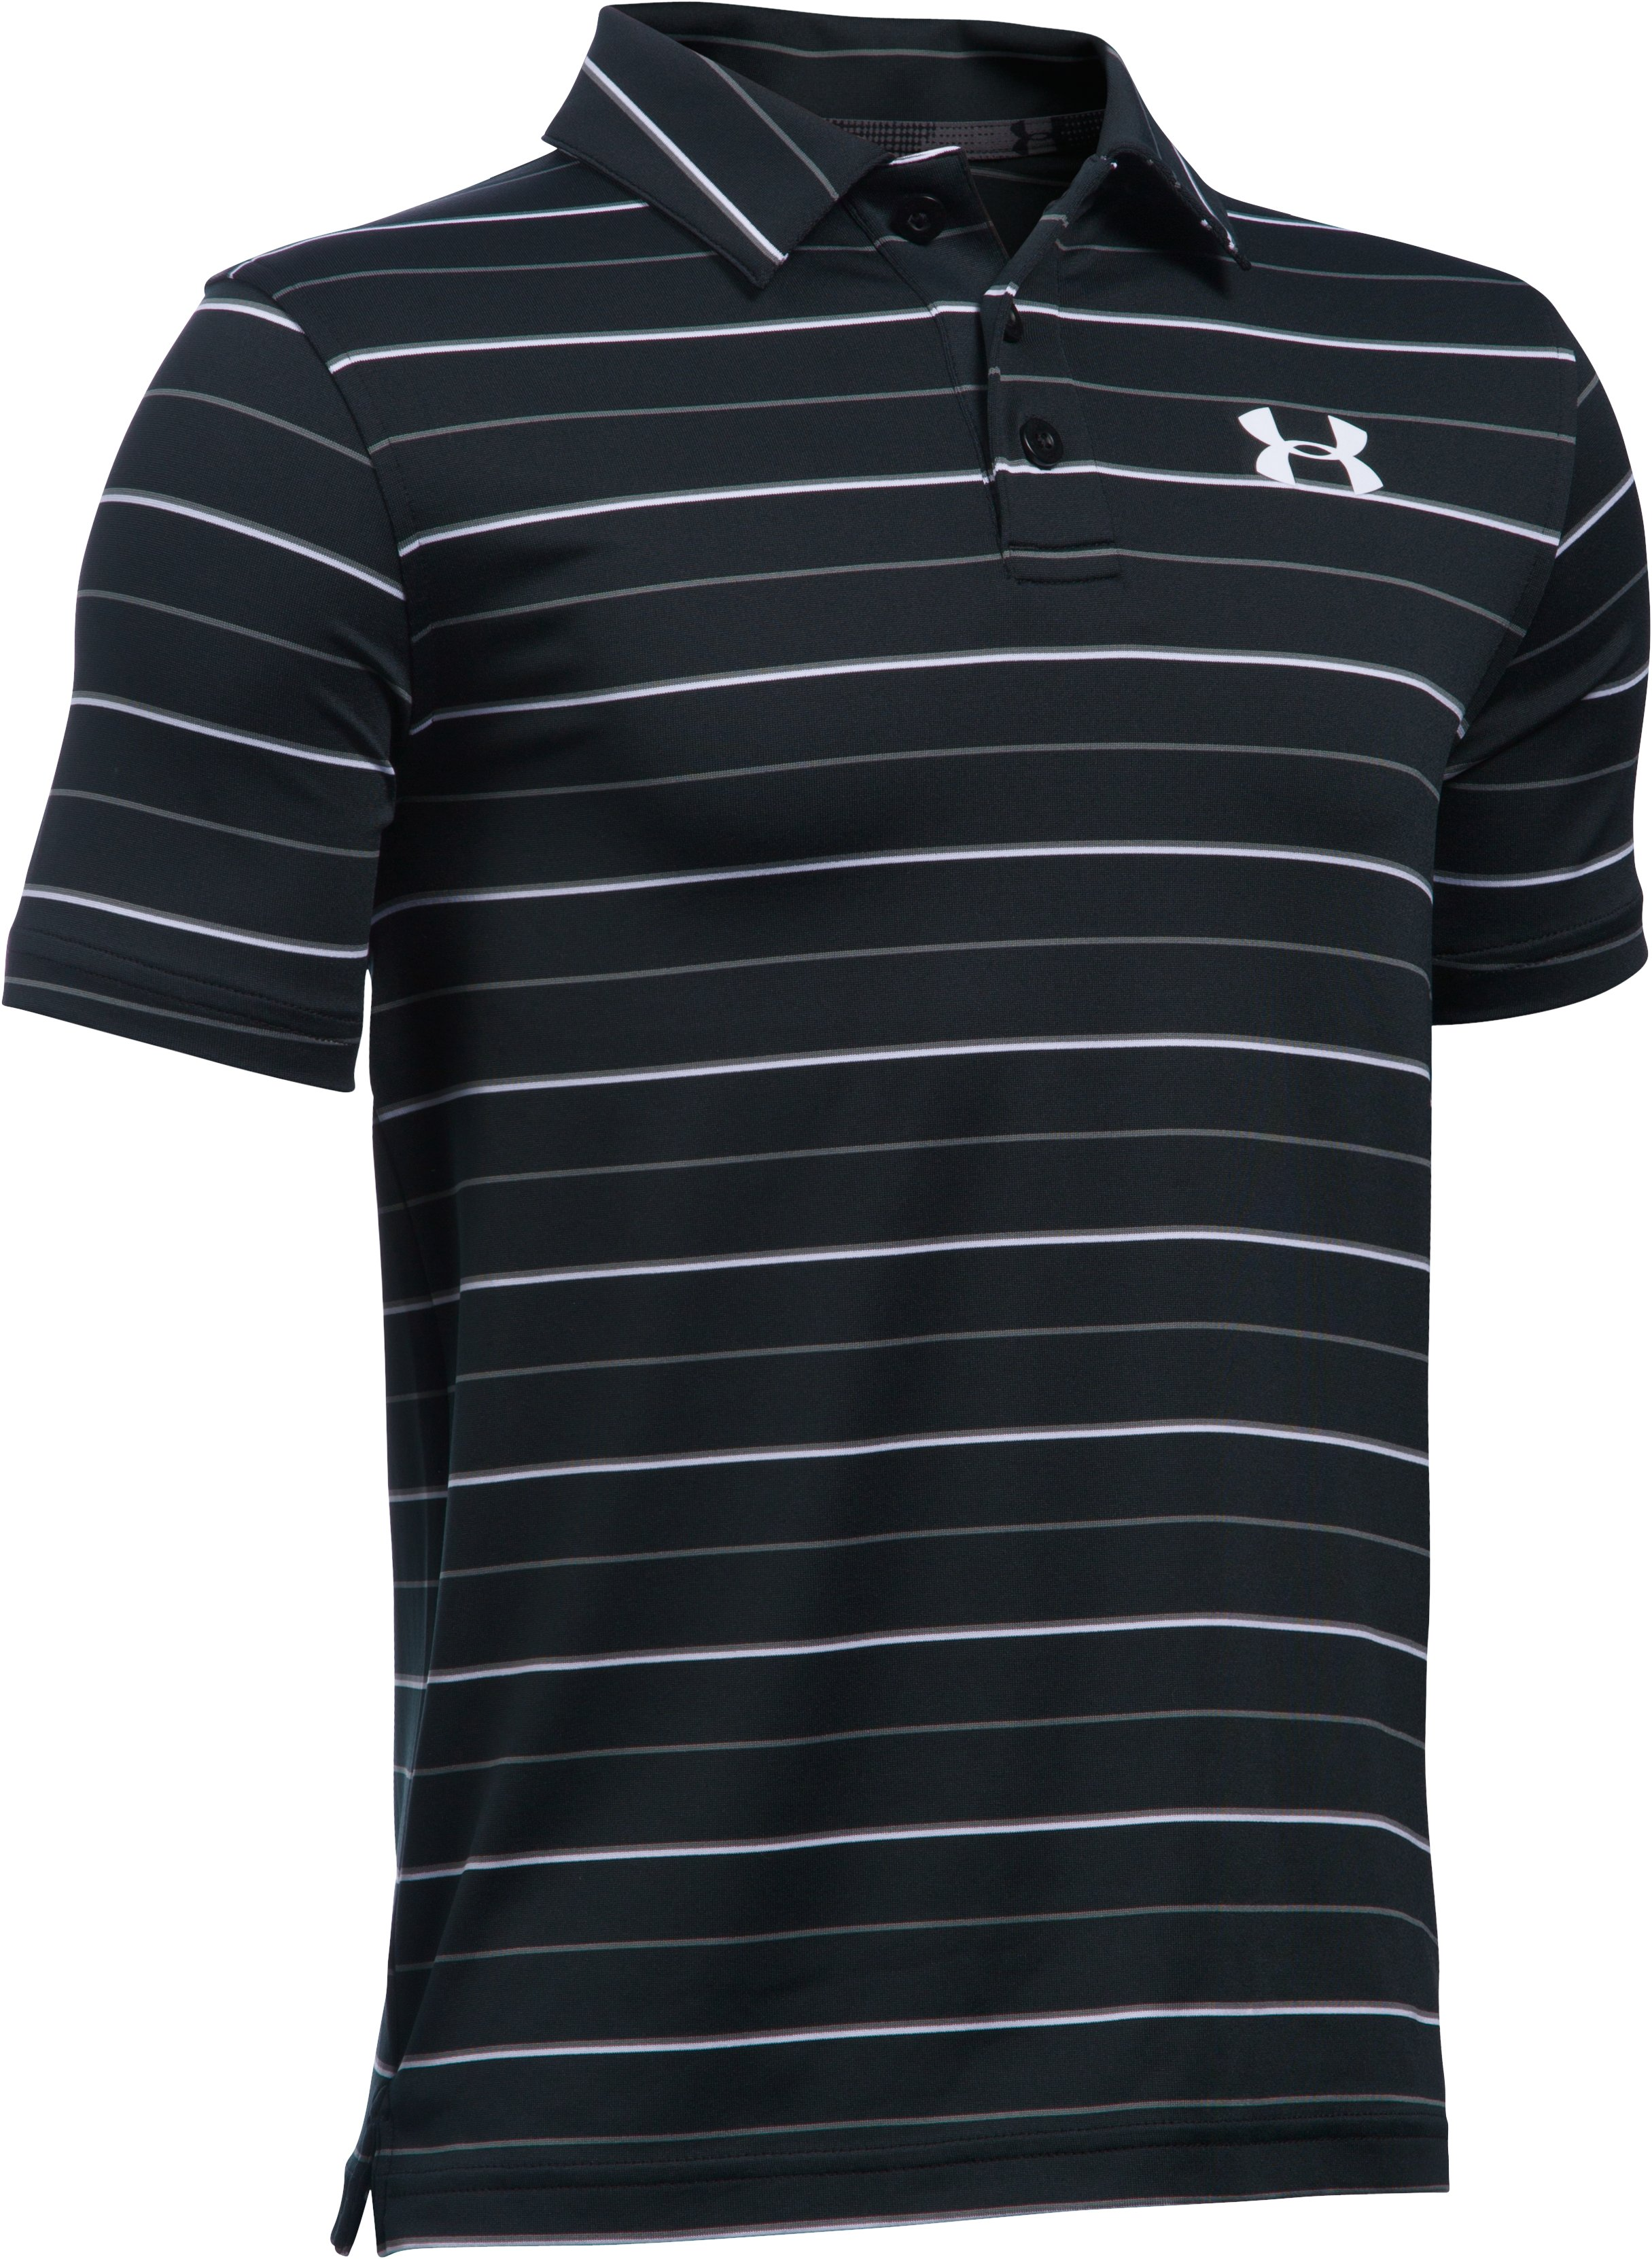 Boys' UA Par Polo, Black